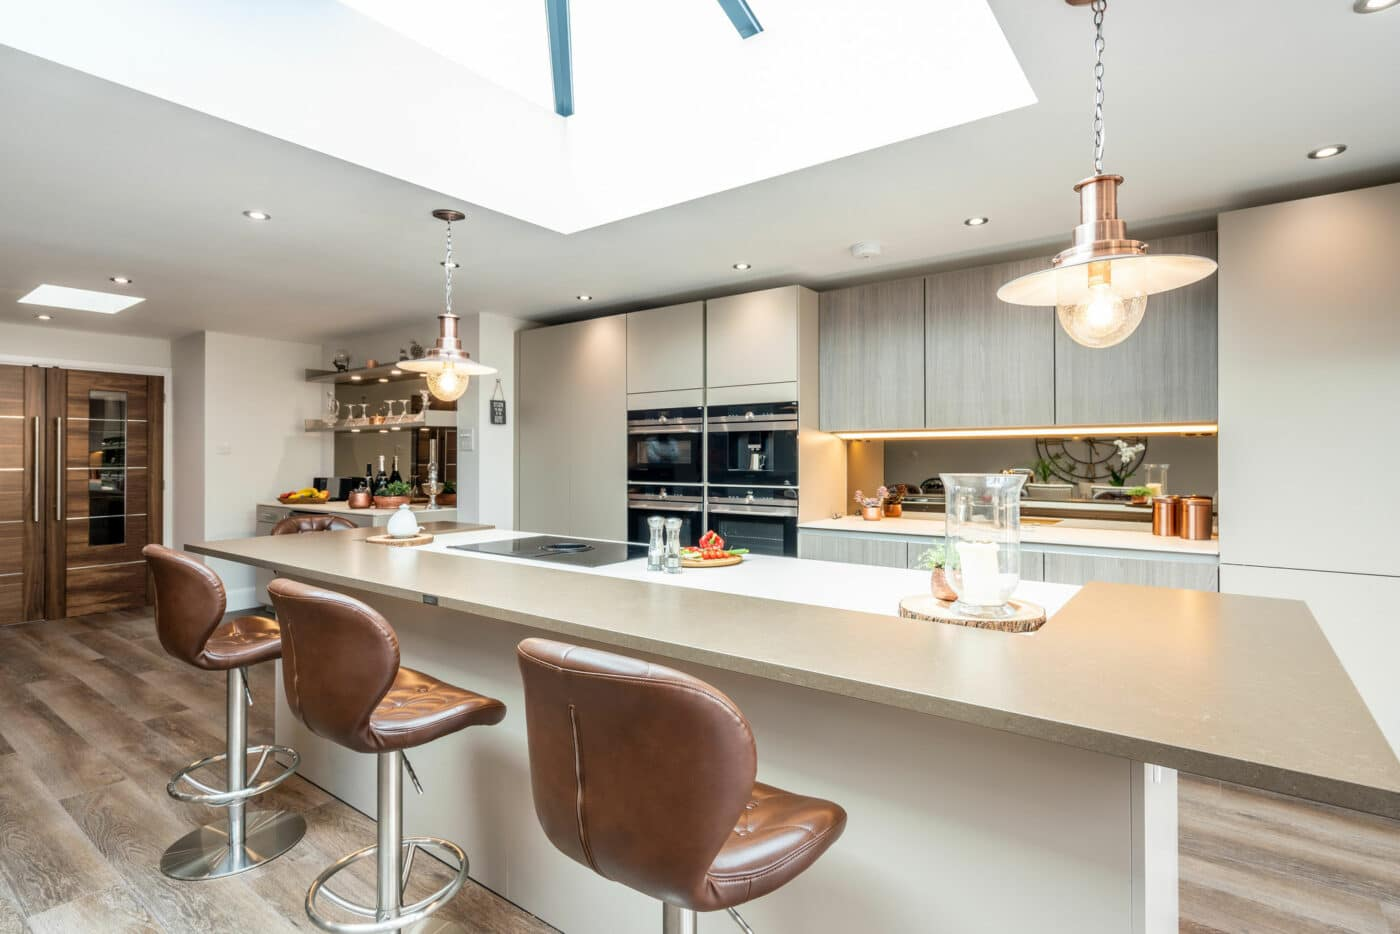 Image of Myers Touch Daniels Kitchen 01038 ZF 2442 14358 1 034 in Home Cosentino - Cosentino